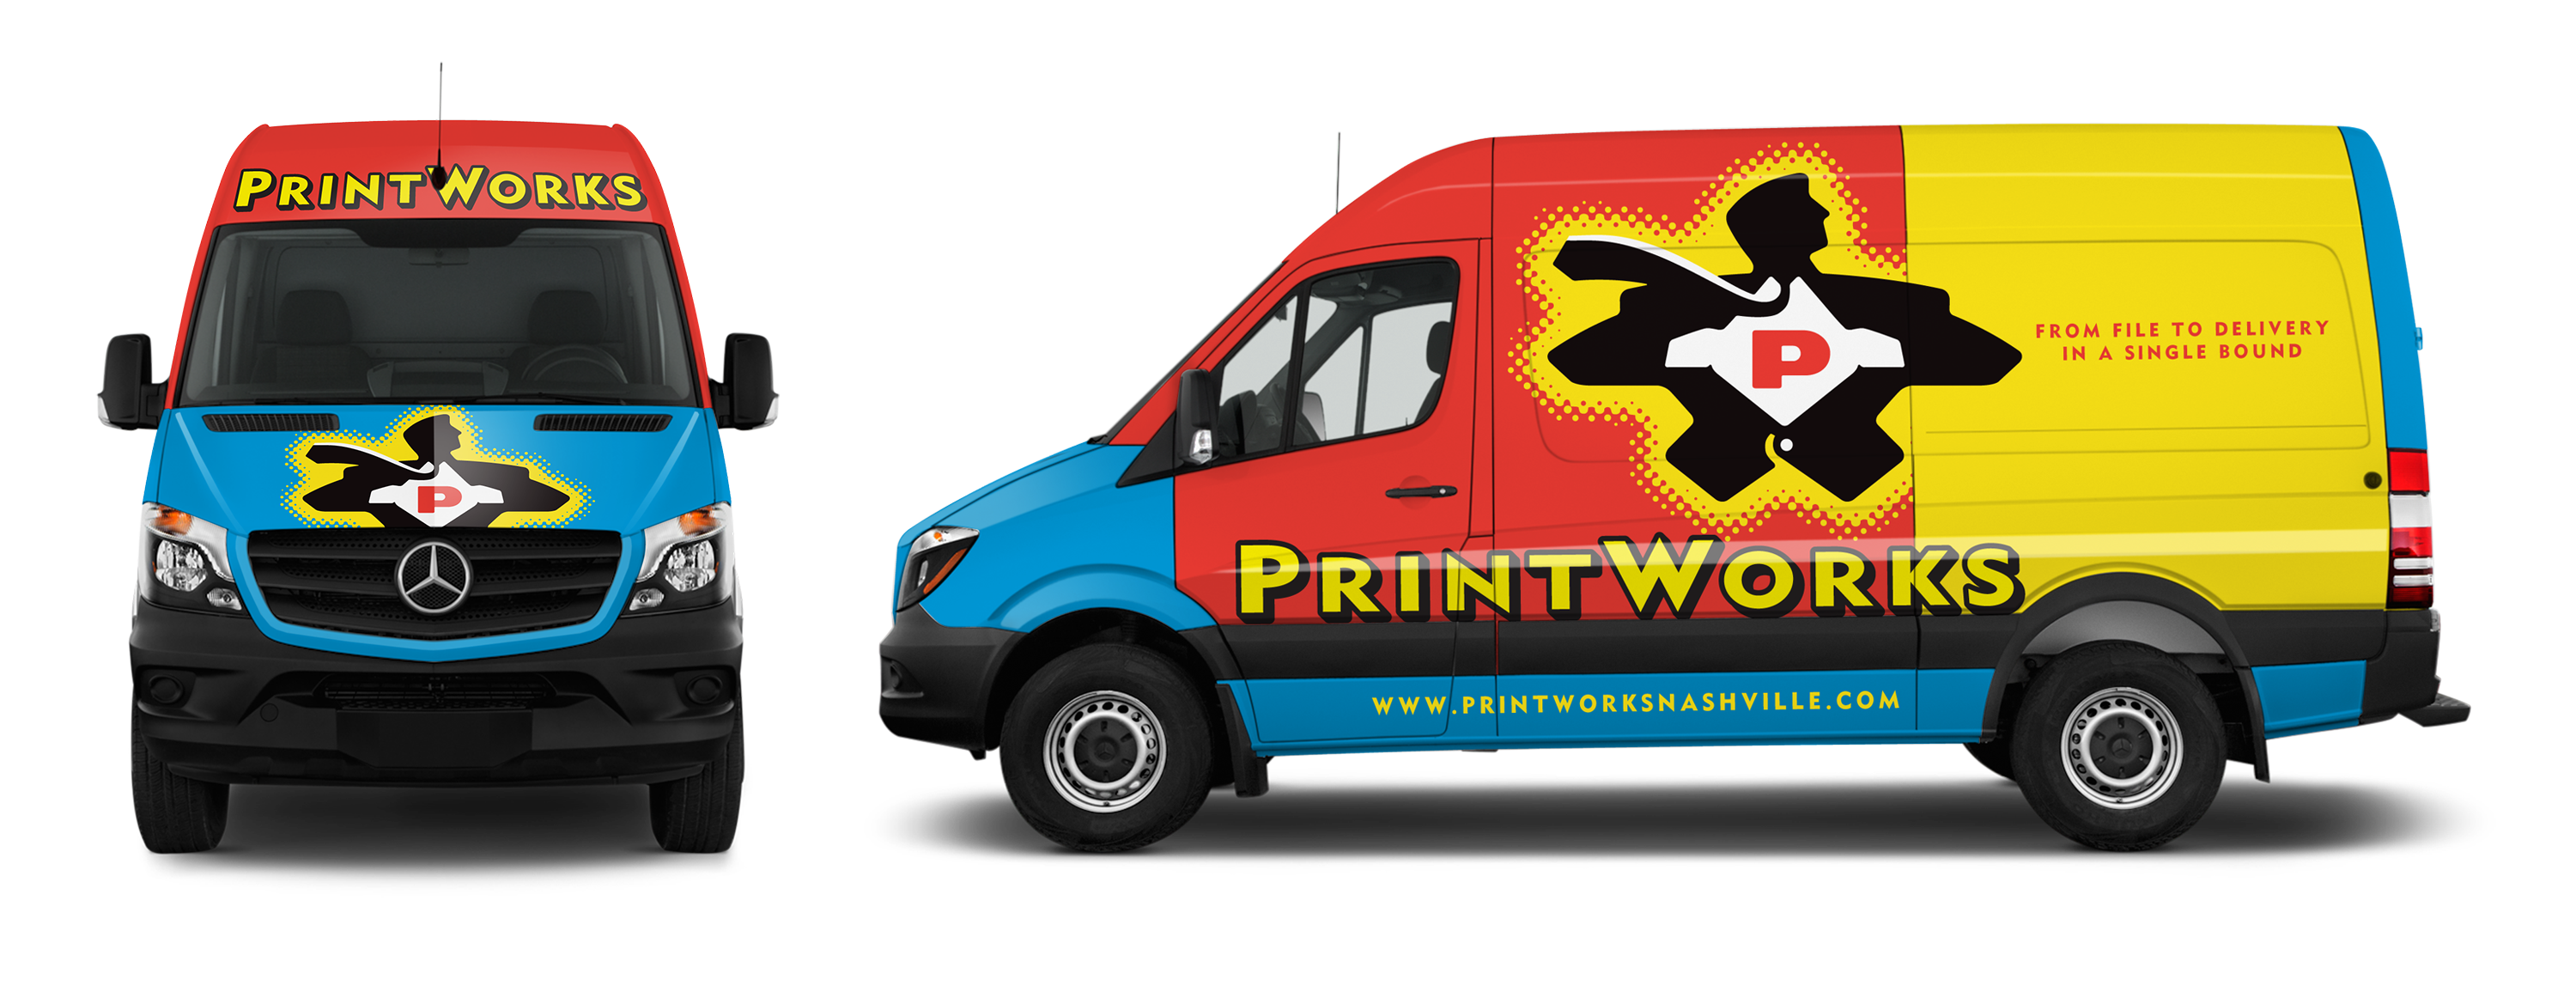 PrintWorks Vehicle Graphics © Robertson Design